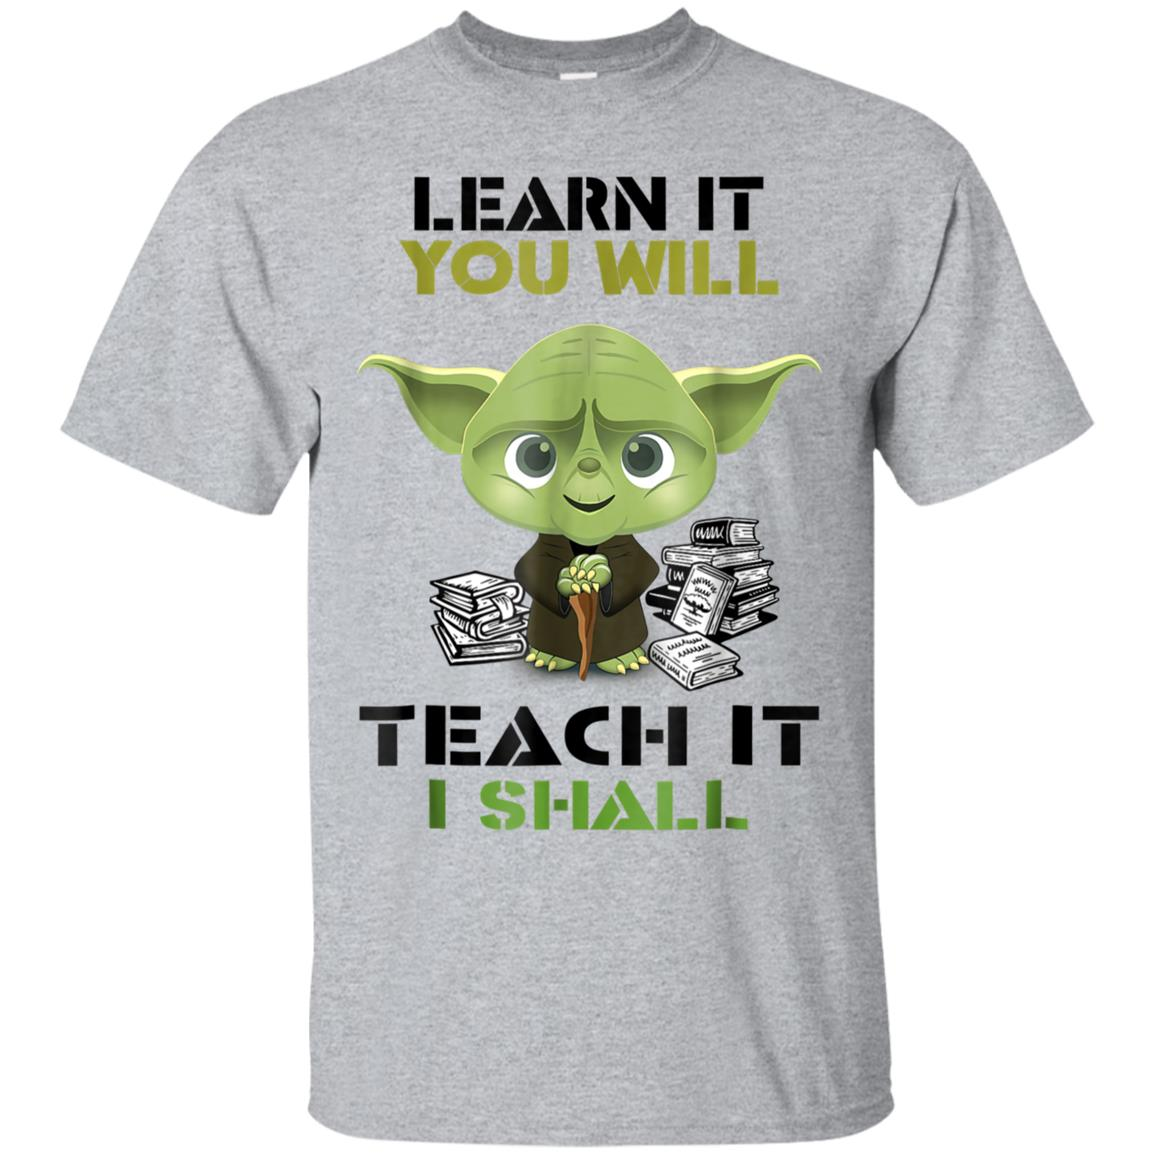 LEARN IT YOU WILL TEACH IT I SHALL T-SHIRT 99promocode